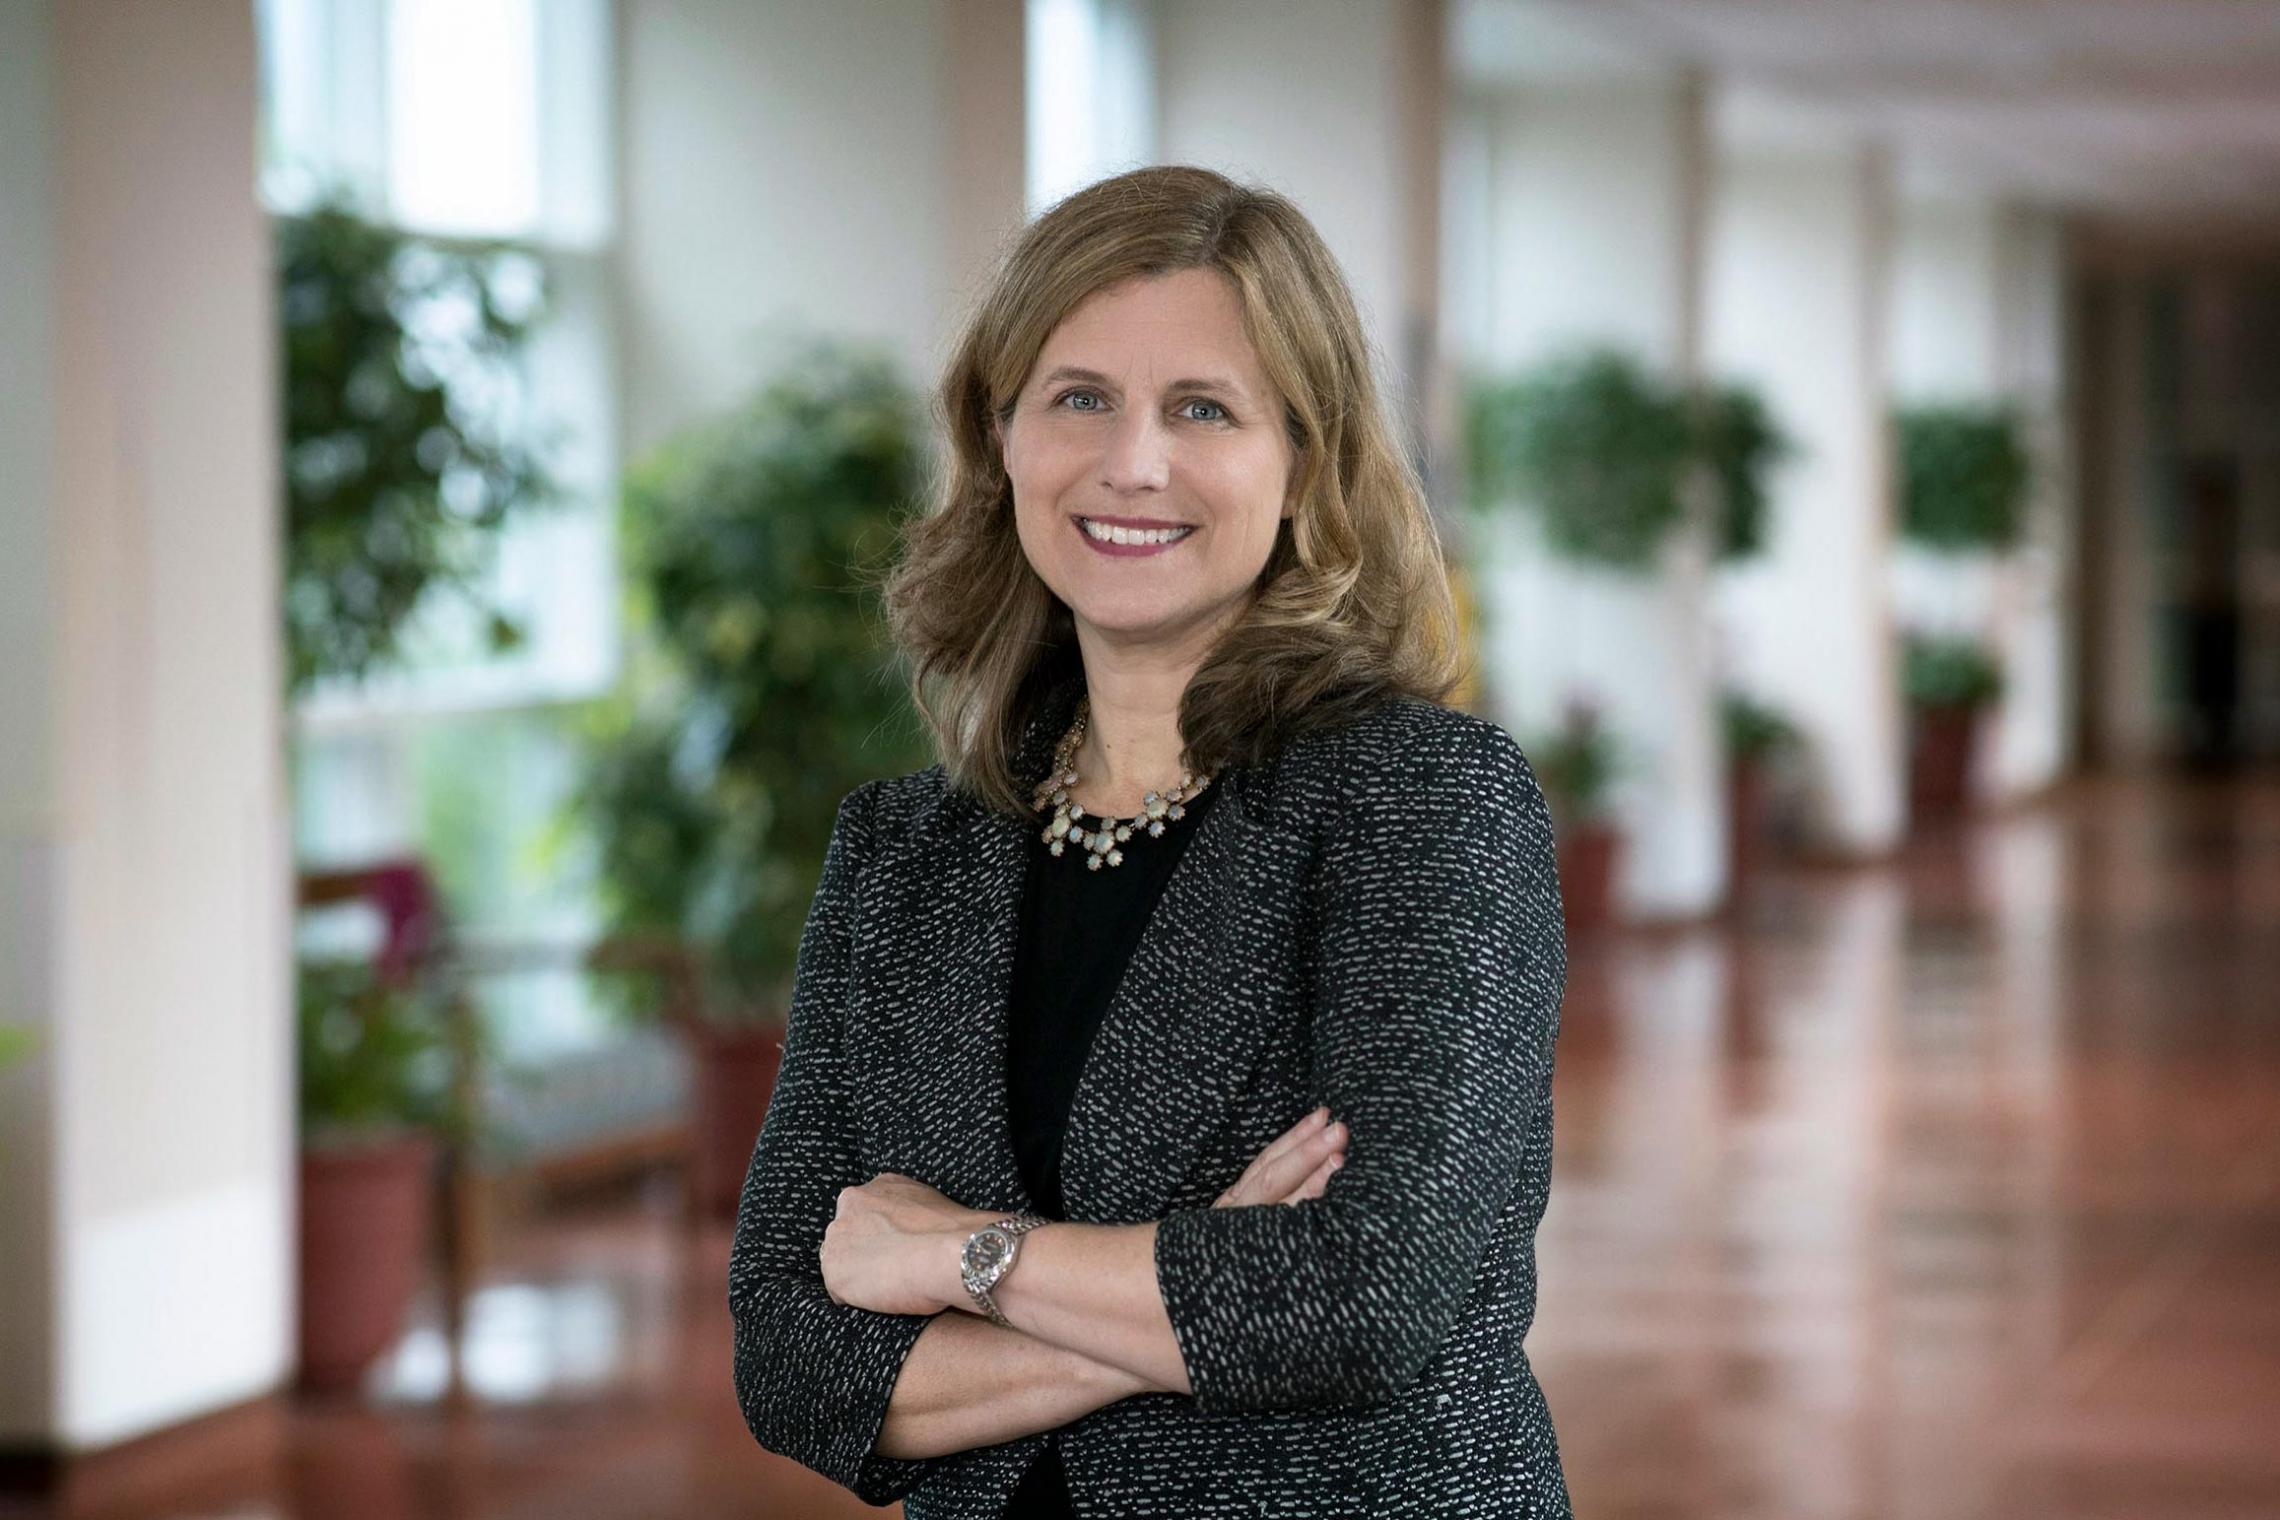 """Elizabeth """"Liz"""" Magill returned to UVA, where she was on the School of Law faculty for 15 years, after serving as dean of Stanford University's Law School."""